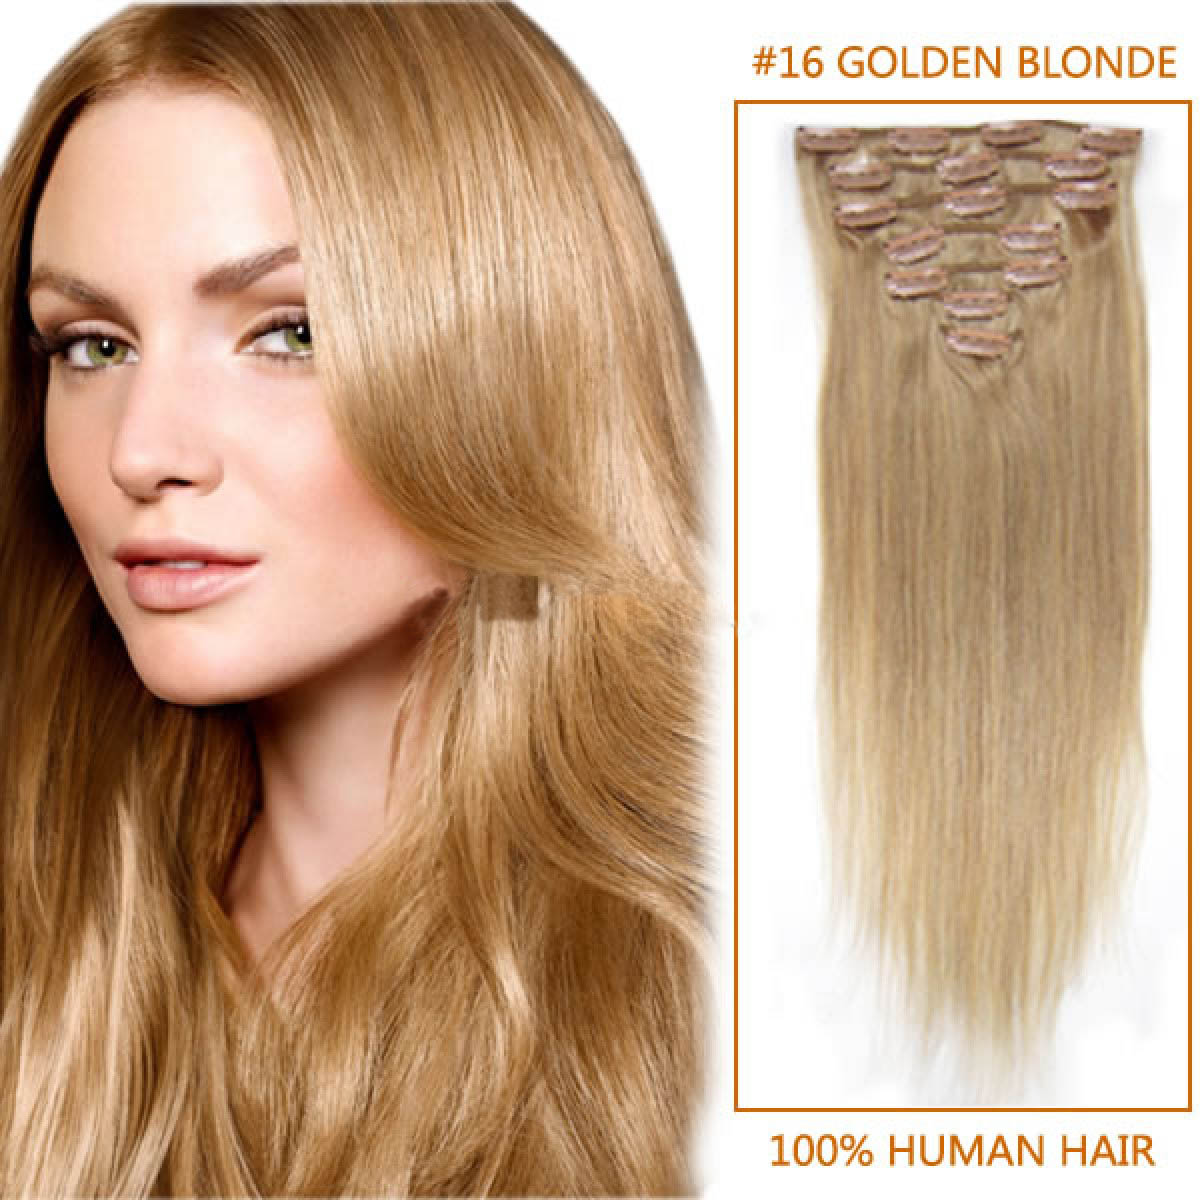 Inch 16 golden blonde clip in remy human hair extensions 7pcs 24 inch 16 golden blonde clip in remy human hair extensions 7pcs pmusecretfo Image collections